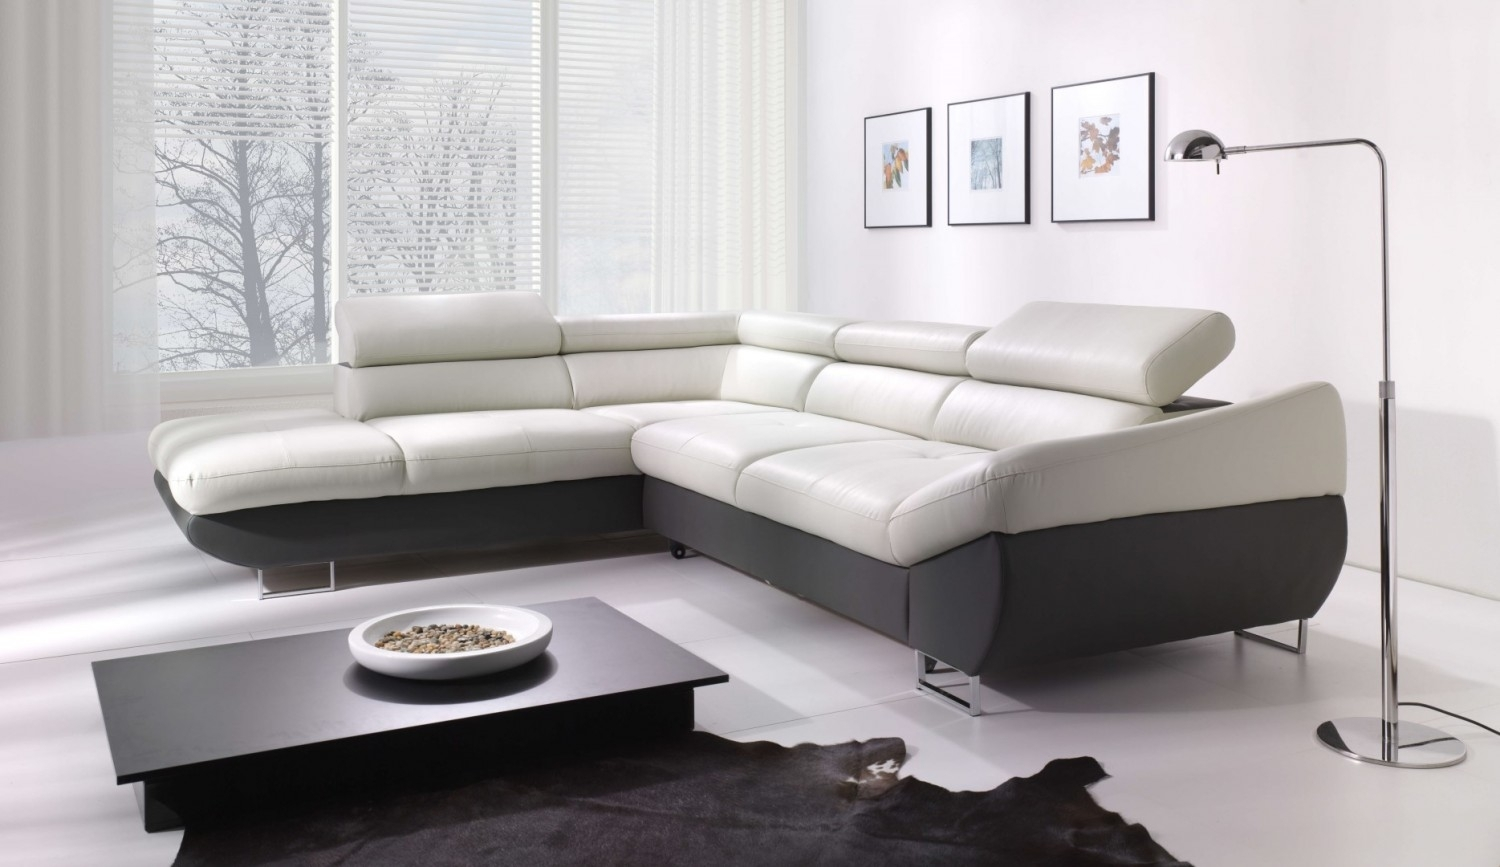 Fabio Sectional Sofa Sleeper With Storage | Creative Furniture For Sectional Sofas With Storage (View 10 of 10)